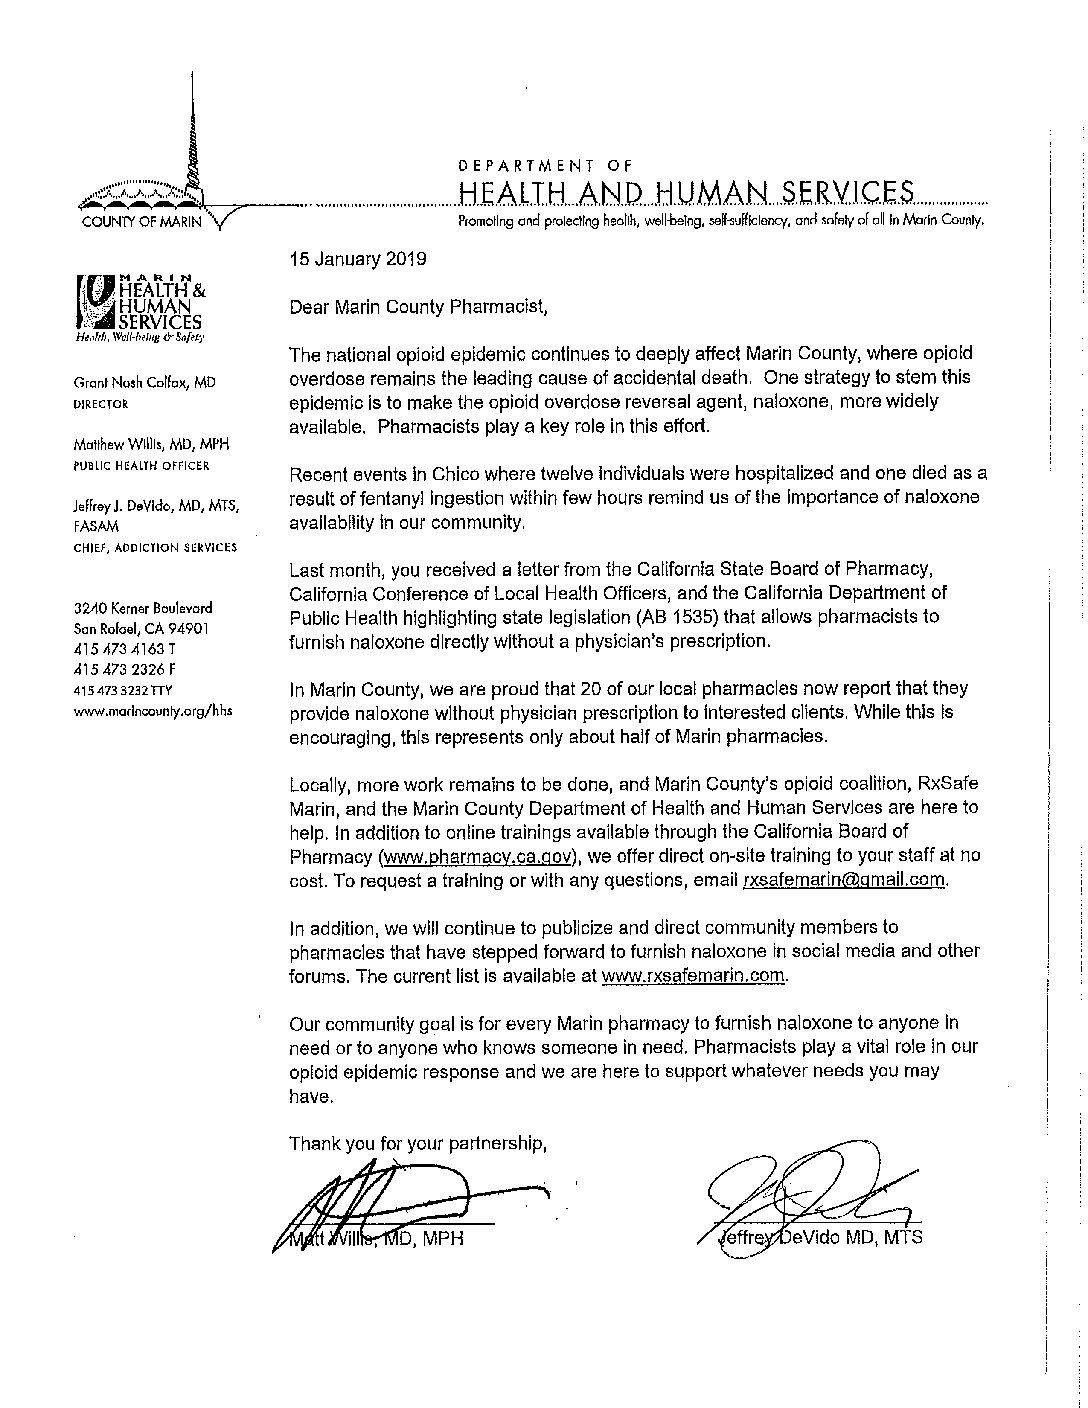 County Letter Sent to Encourage Every Pharmacy to Furnish Naloxone